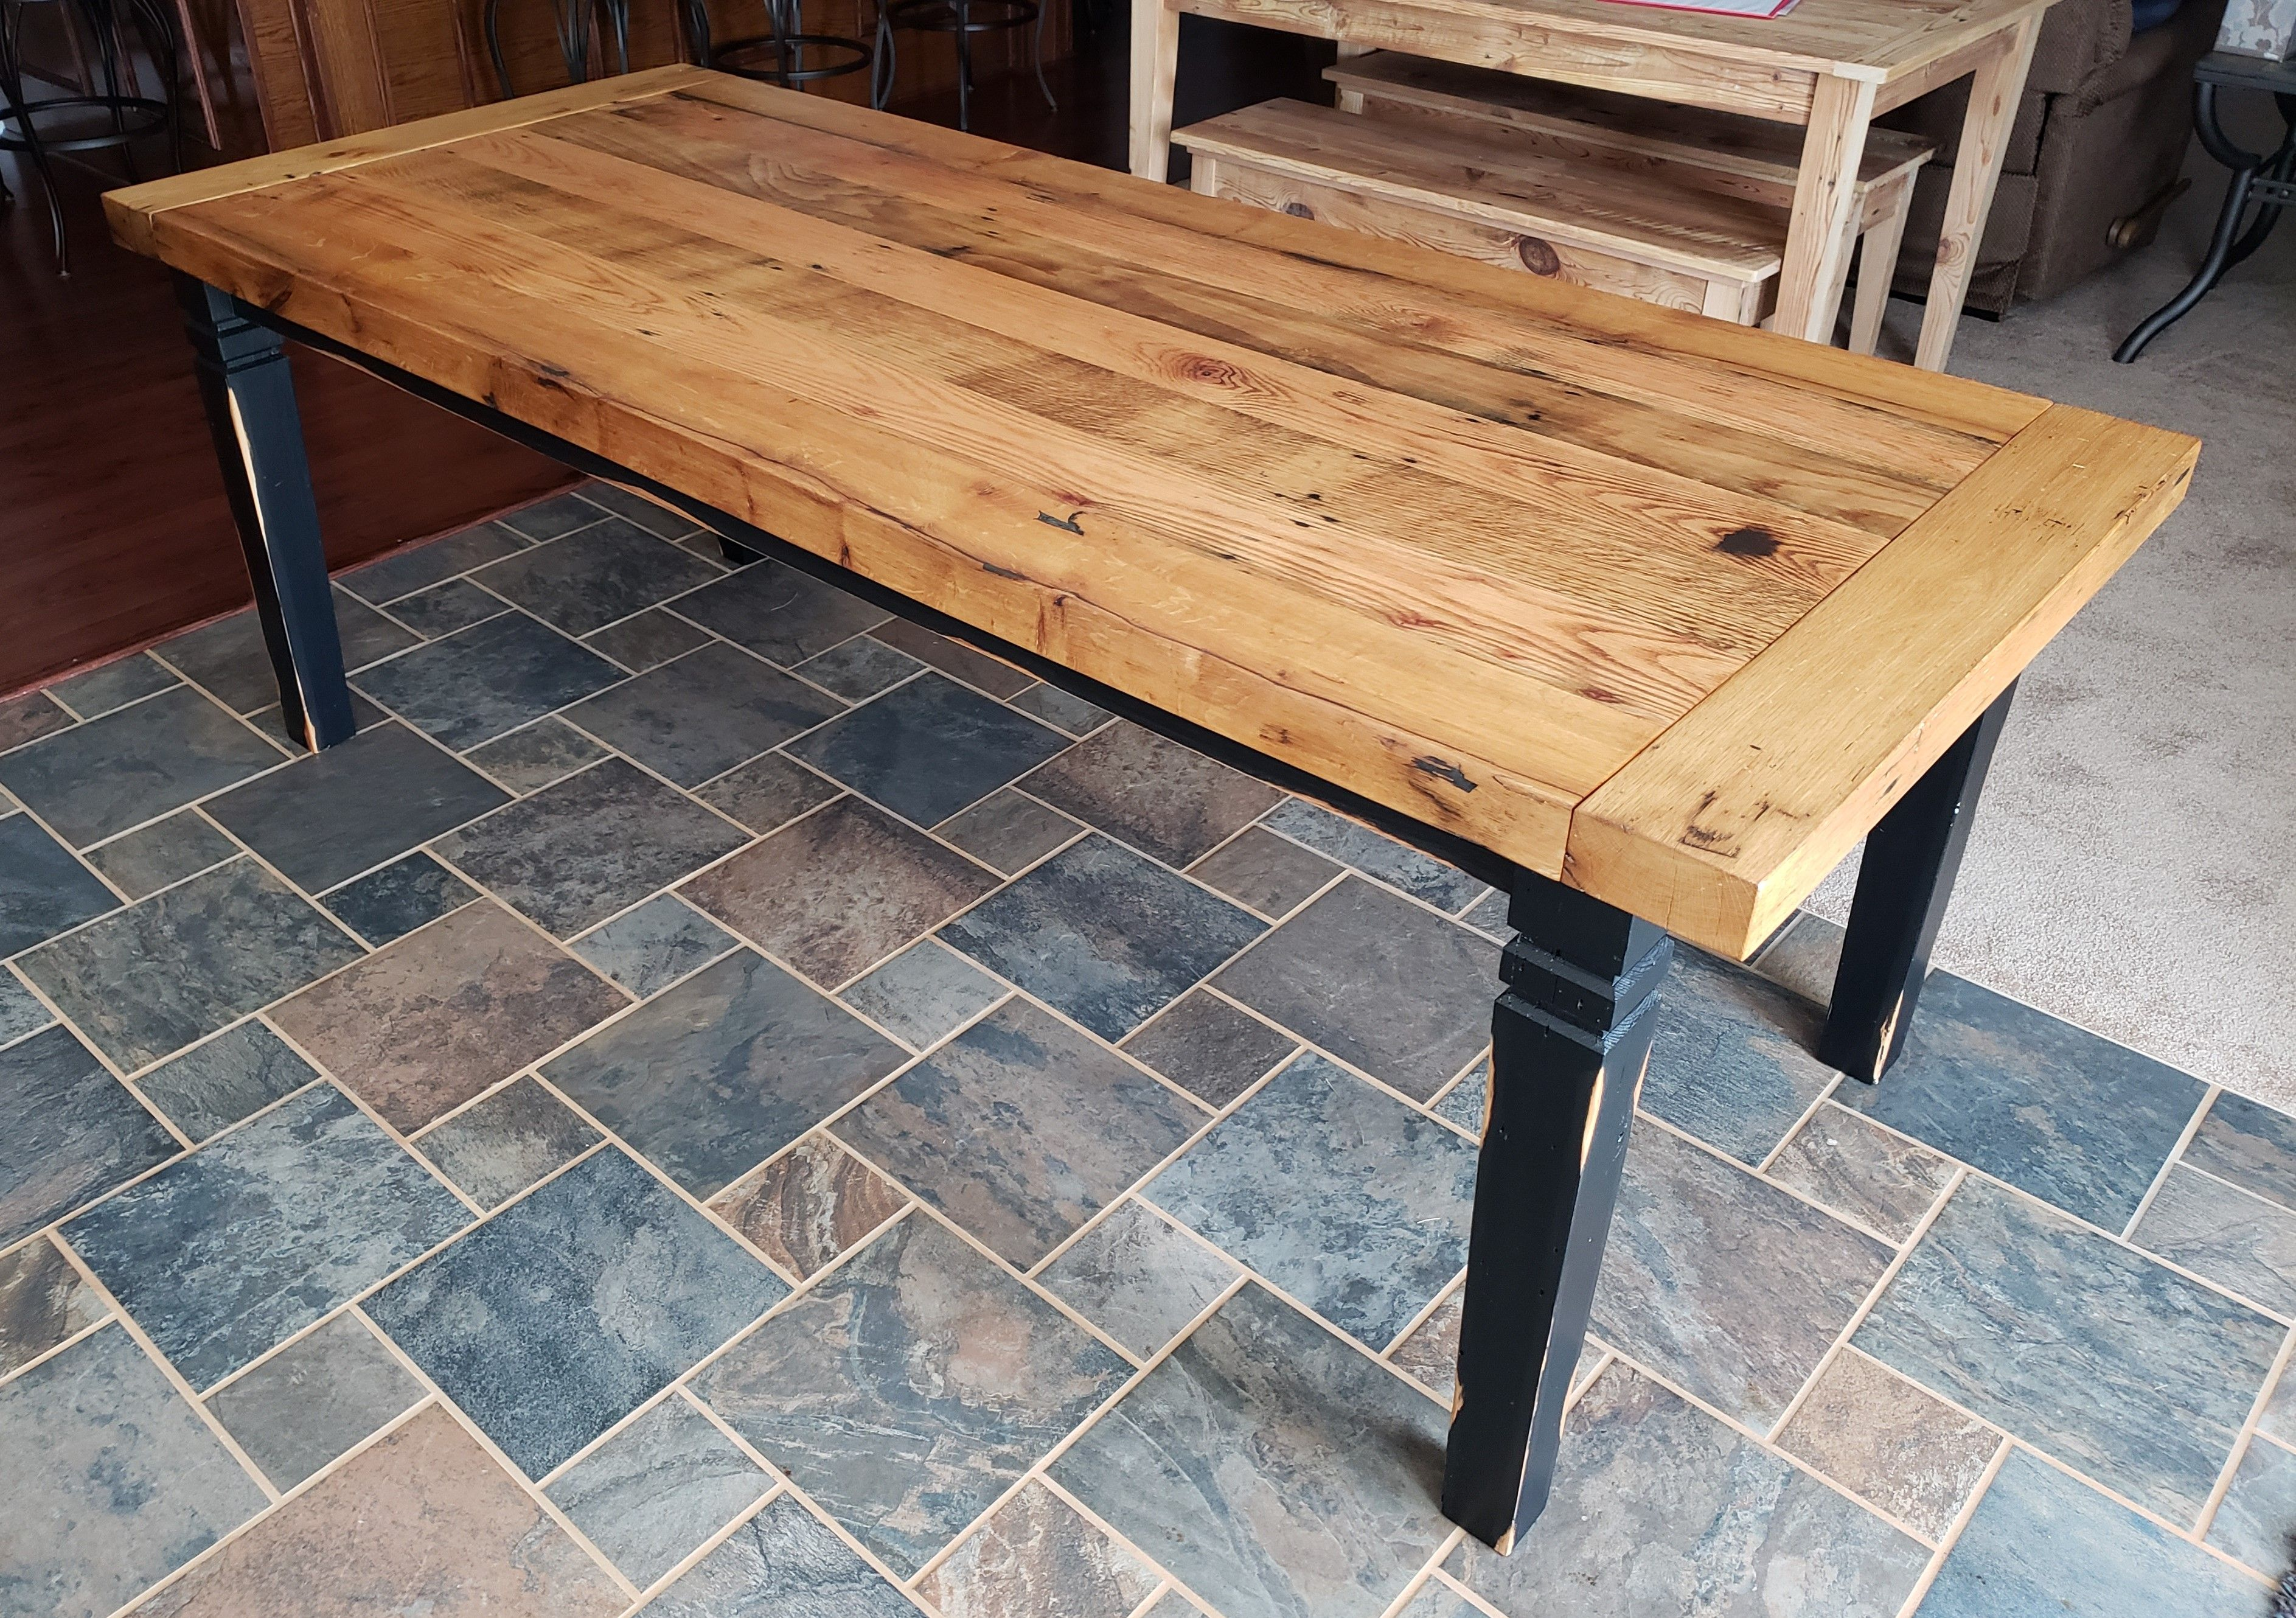 Custom Oak Thick Top Farm Table With Comapny Boards By Flying Pigs Furniture Llc Custommade Com